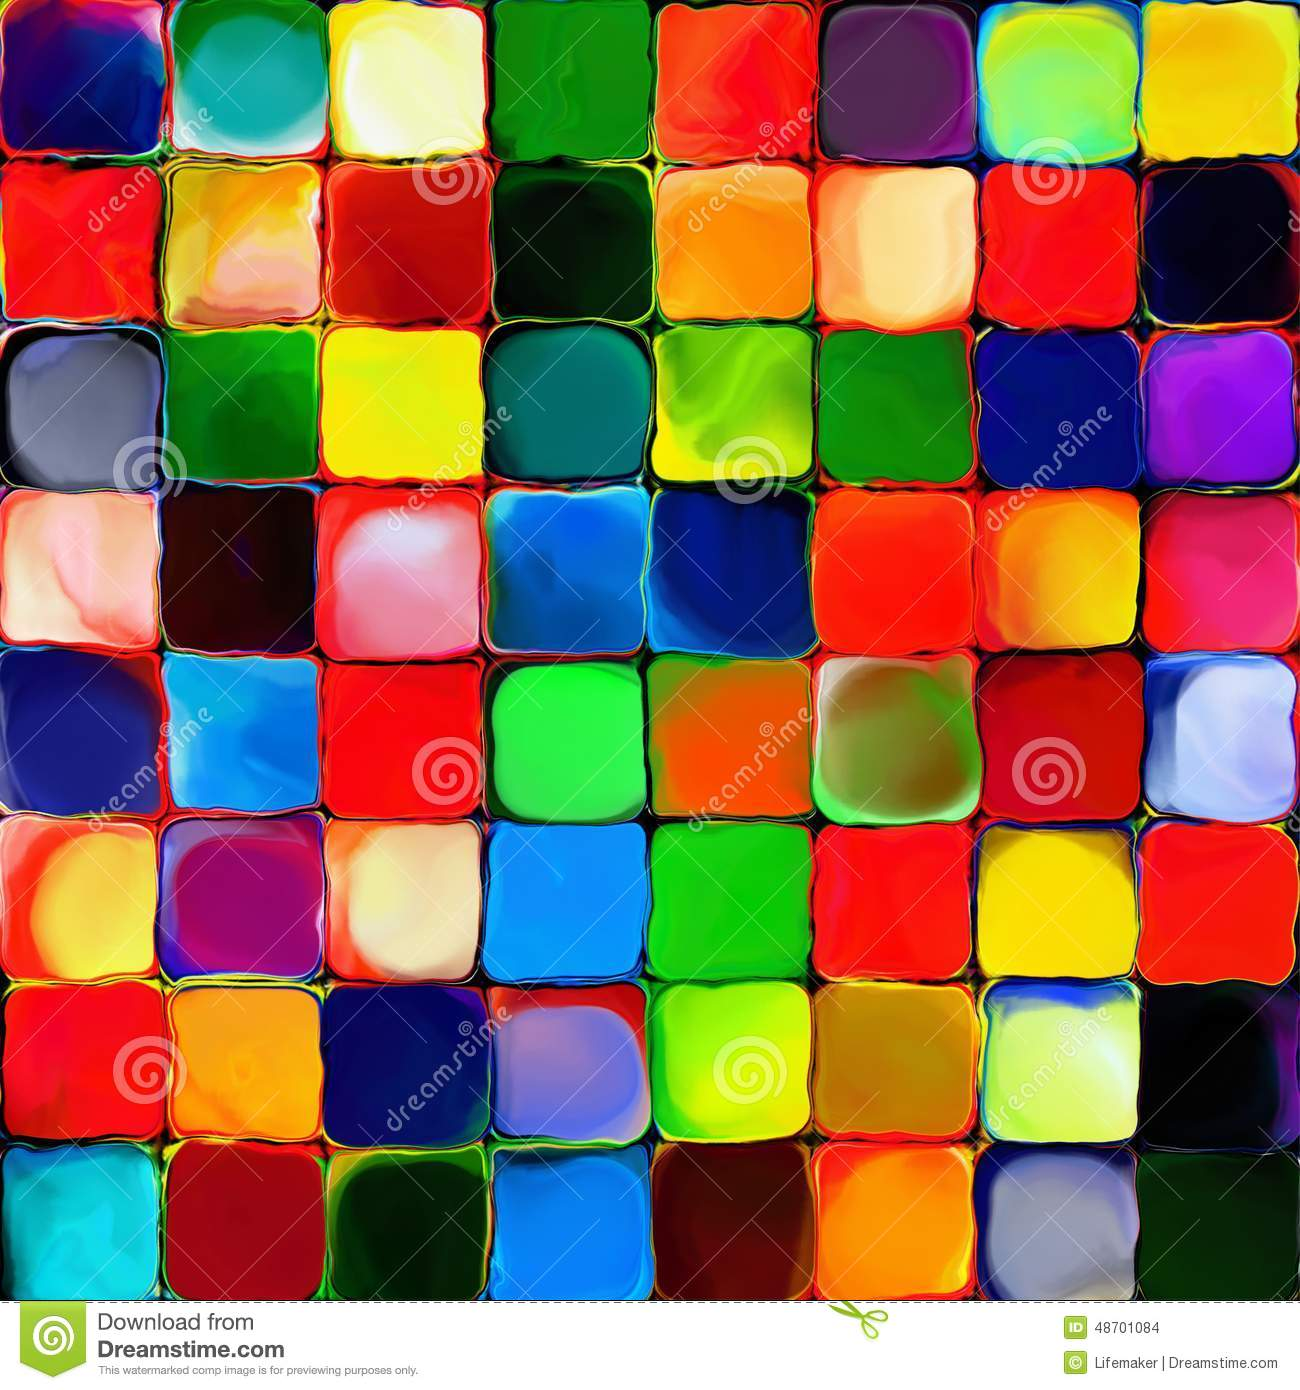 Abstract rainbow color paint tiles pattern art background - Choix des couleurs de peinture ...